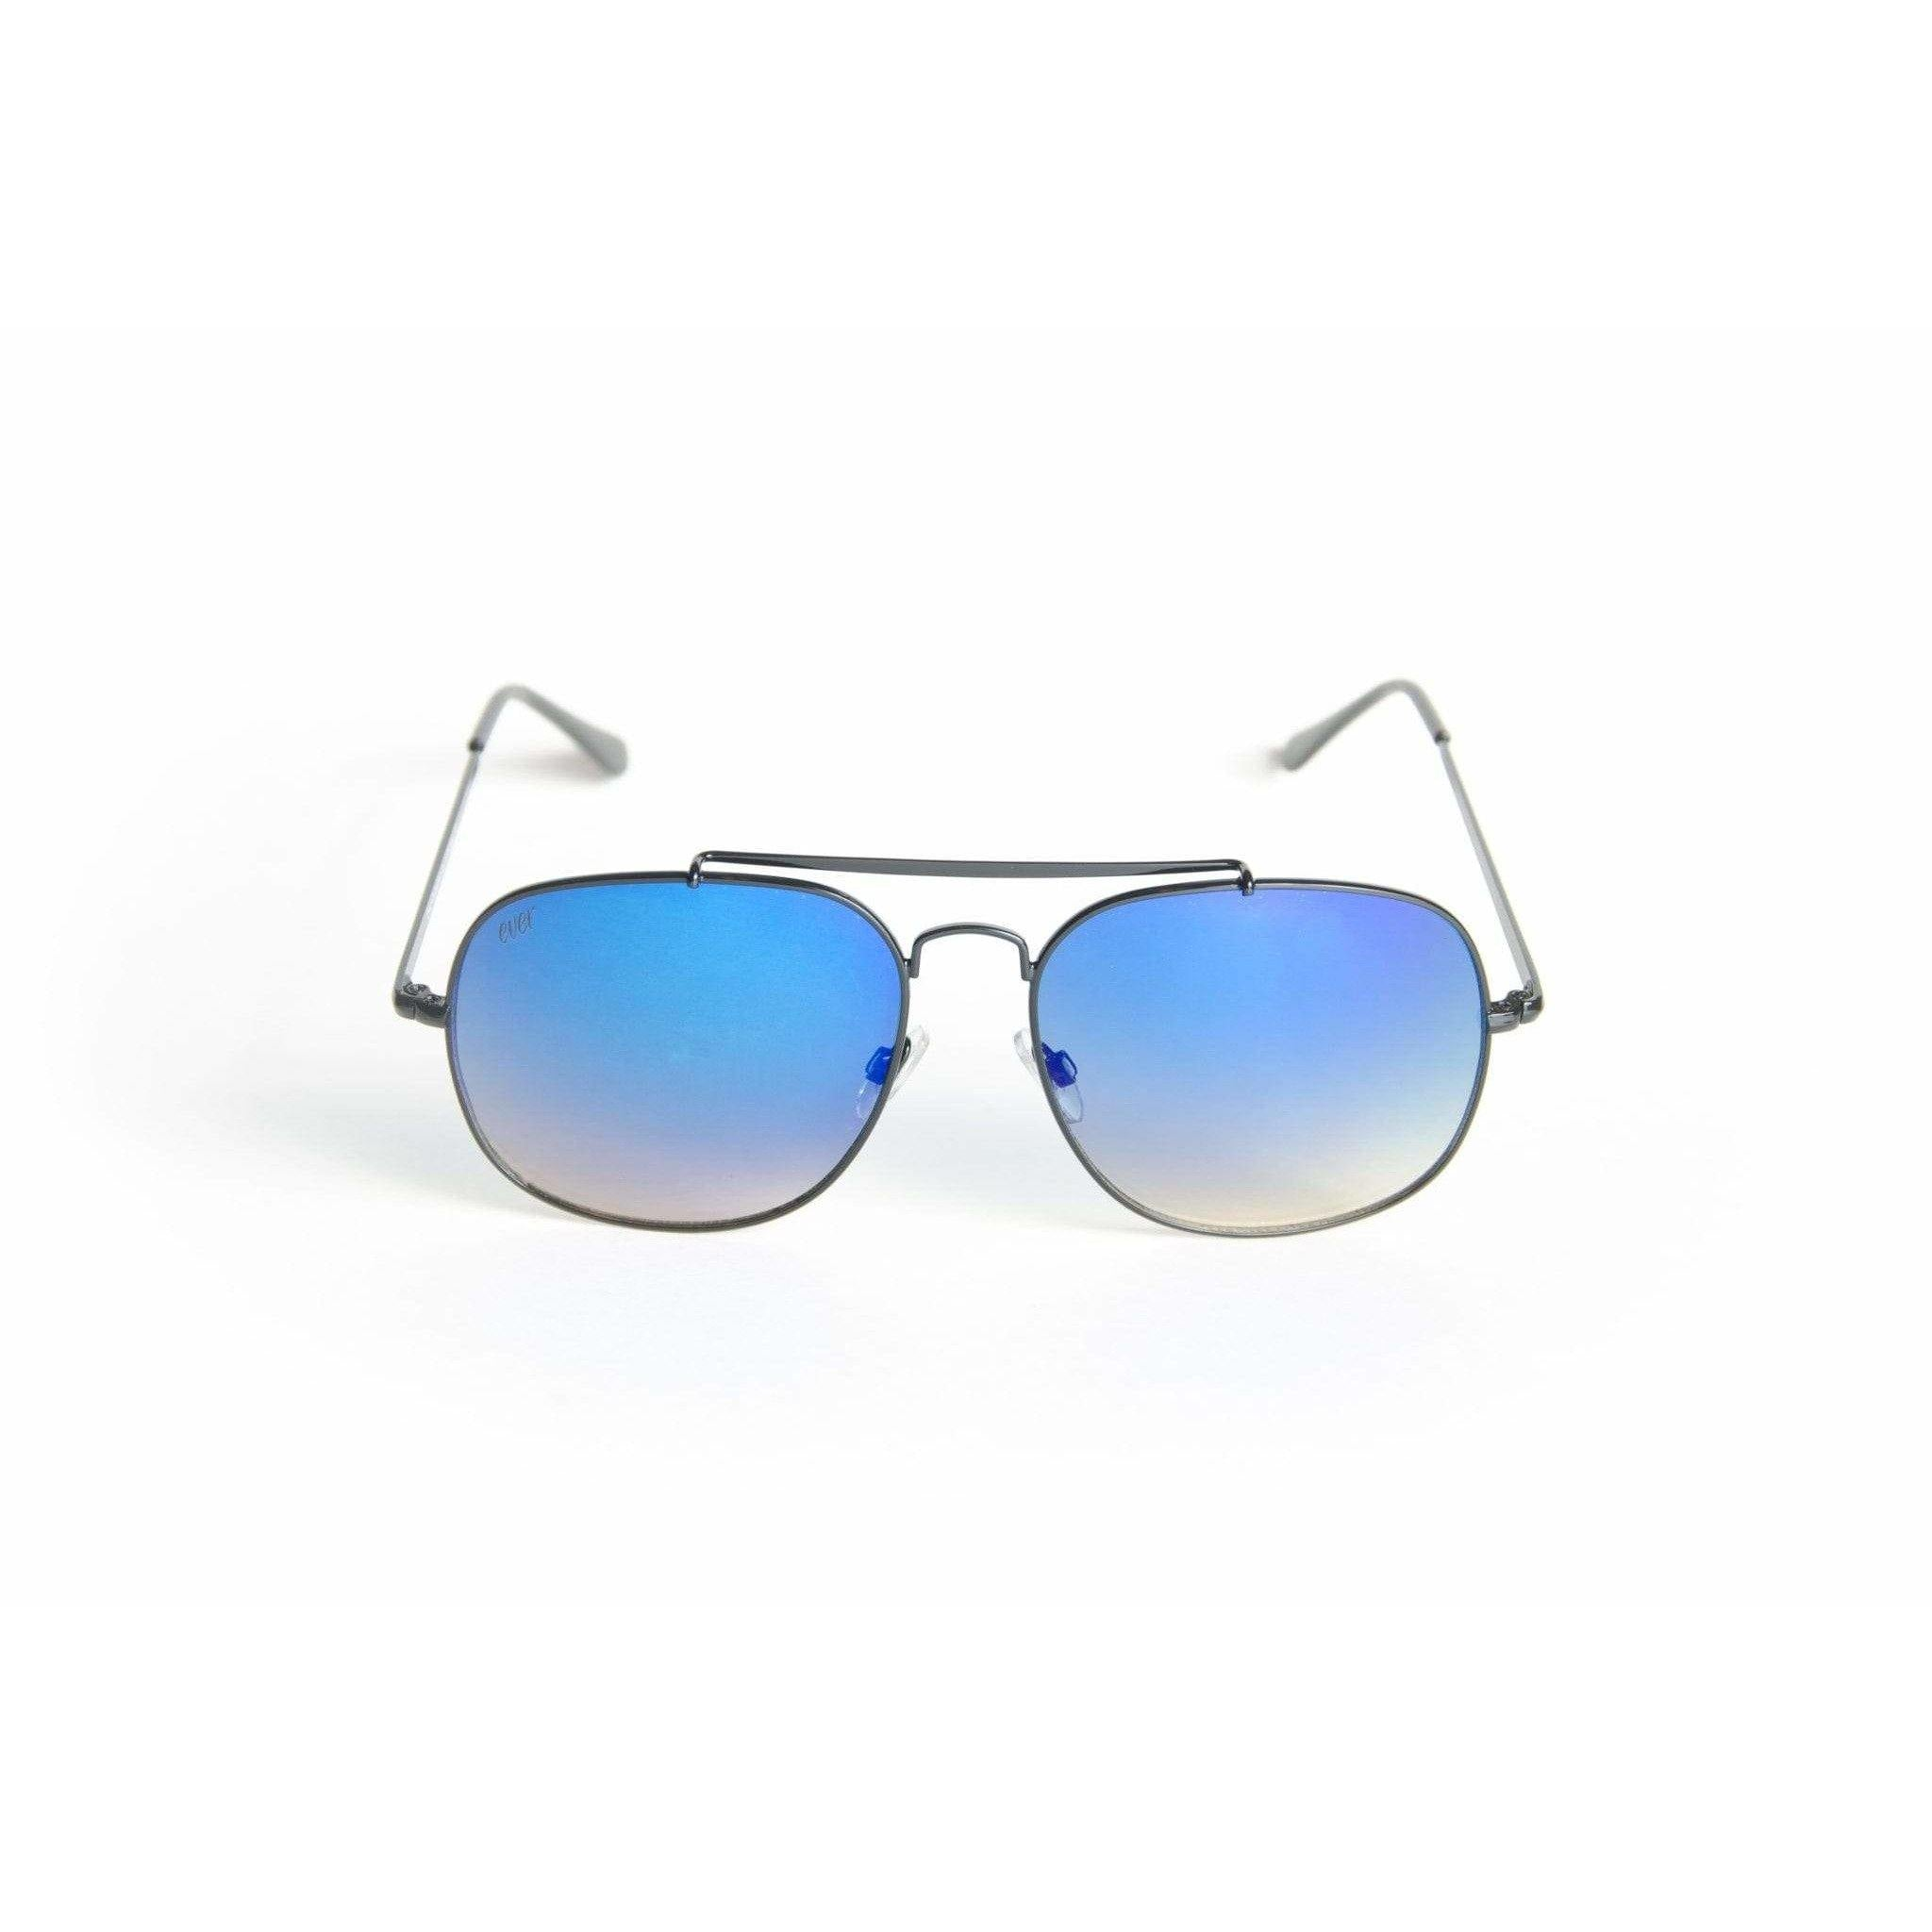 "Ever Fashion Designer Sunglasses Model ""Entourage"" By: The Ever Collection"